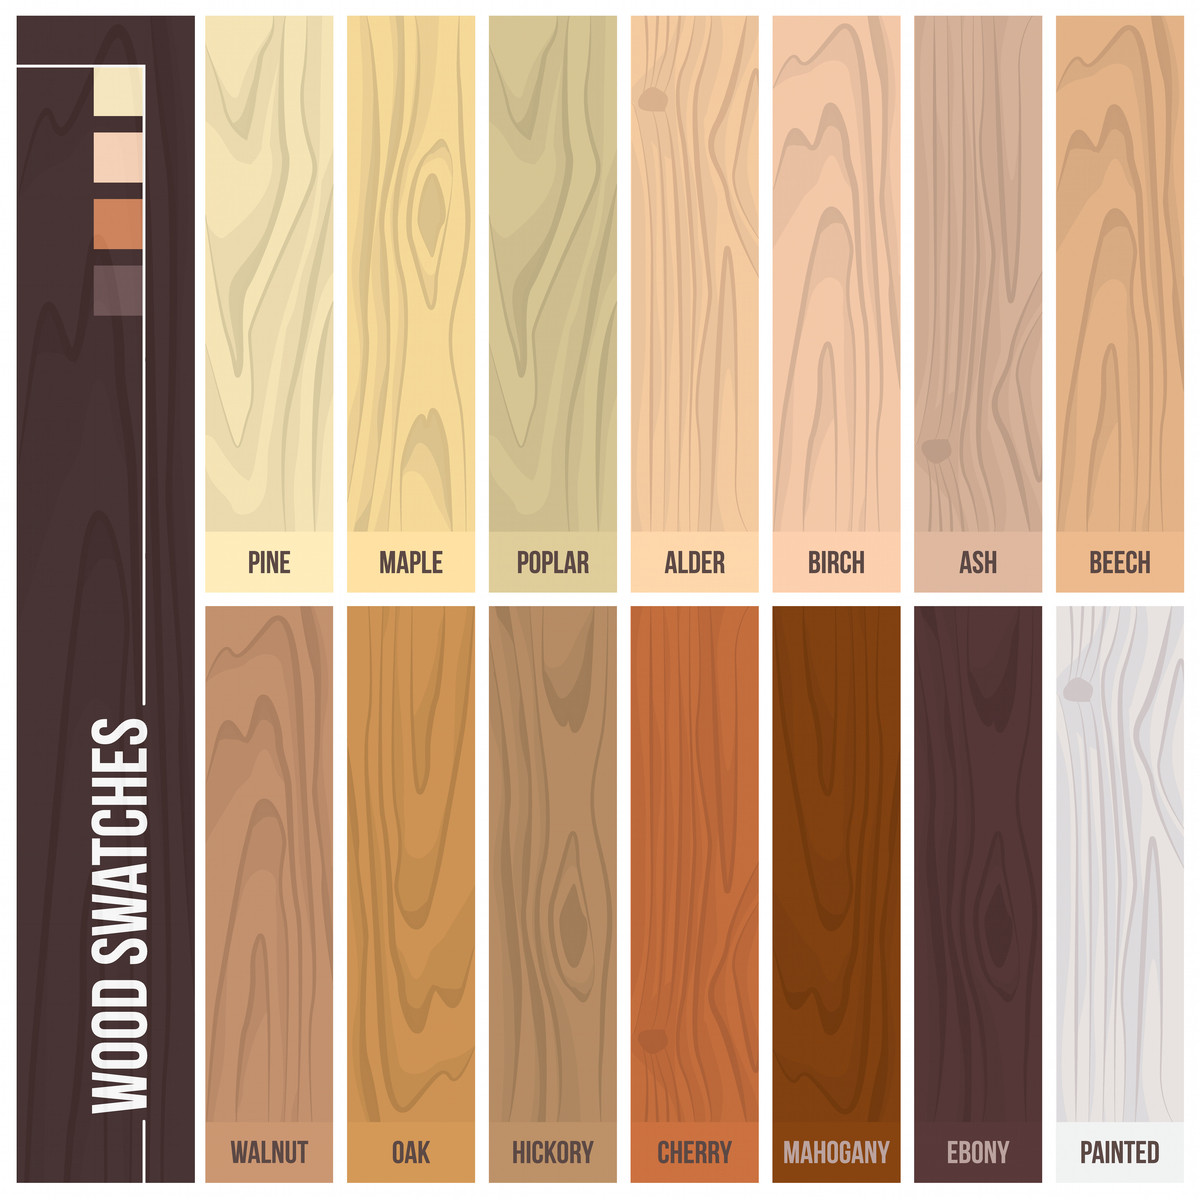 discount solid hardwood flooring of 12 types of hardwood flooring species styles edging dimensions with types of hardwood flooring illustrated guide